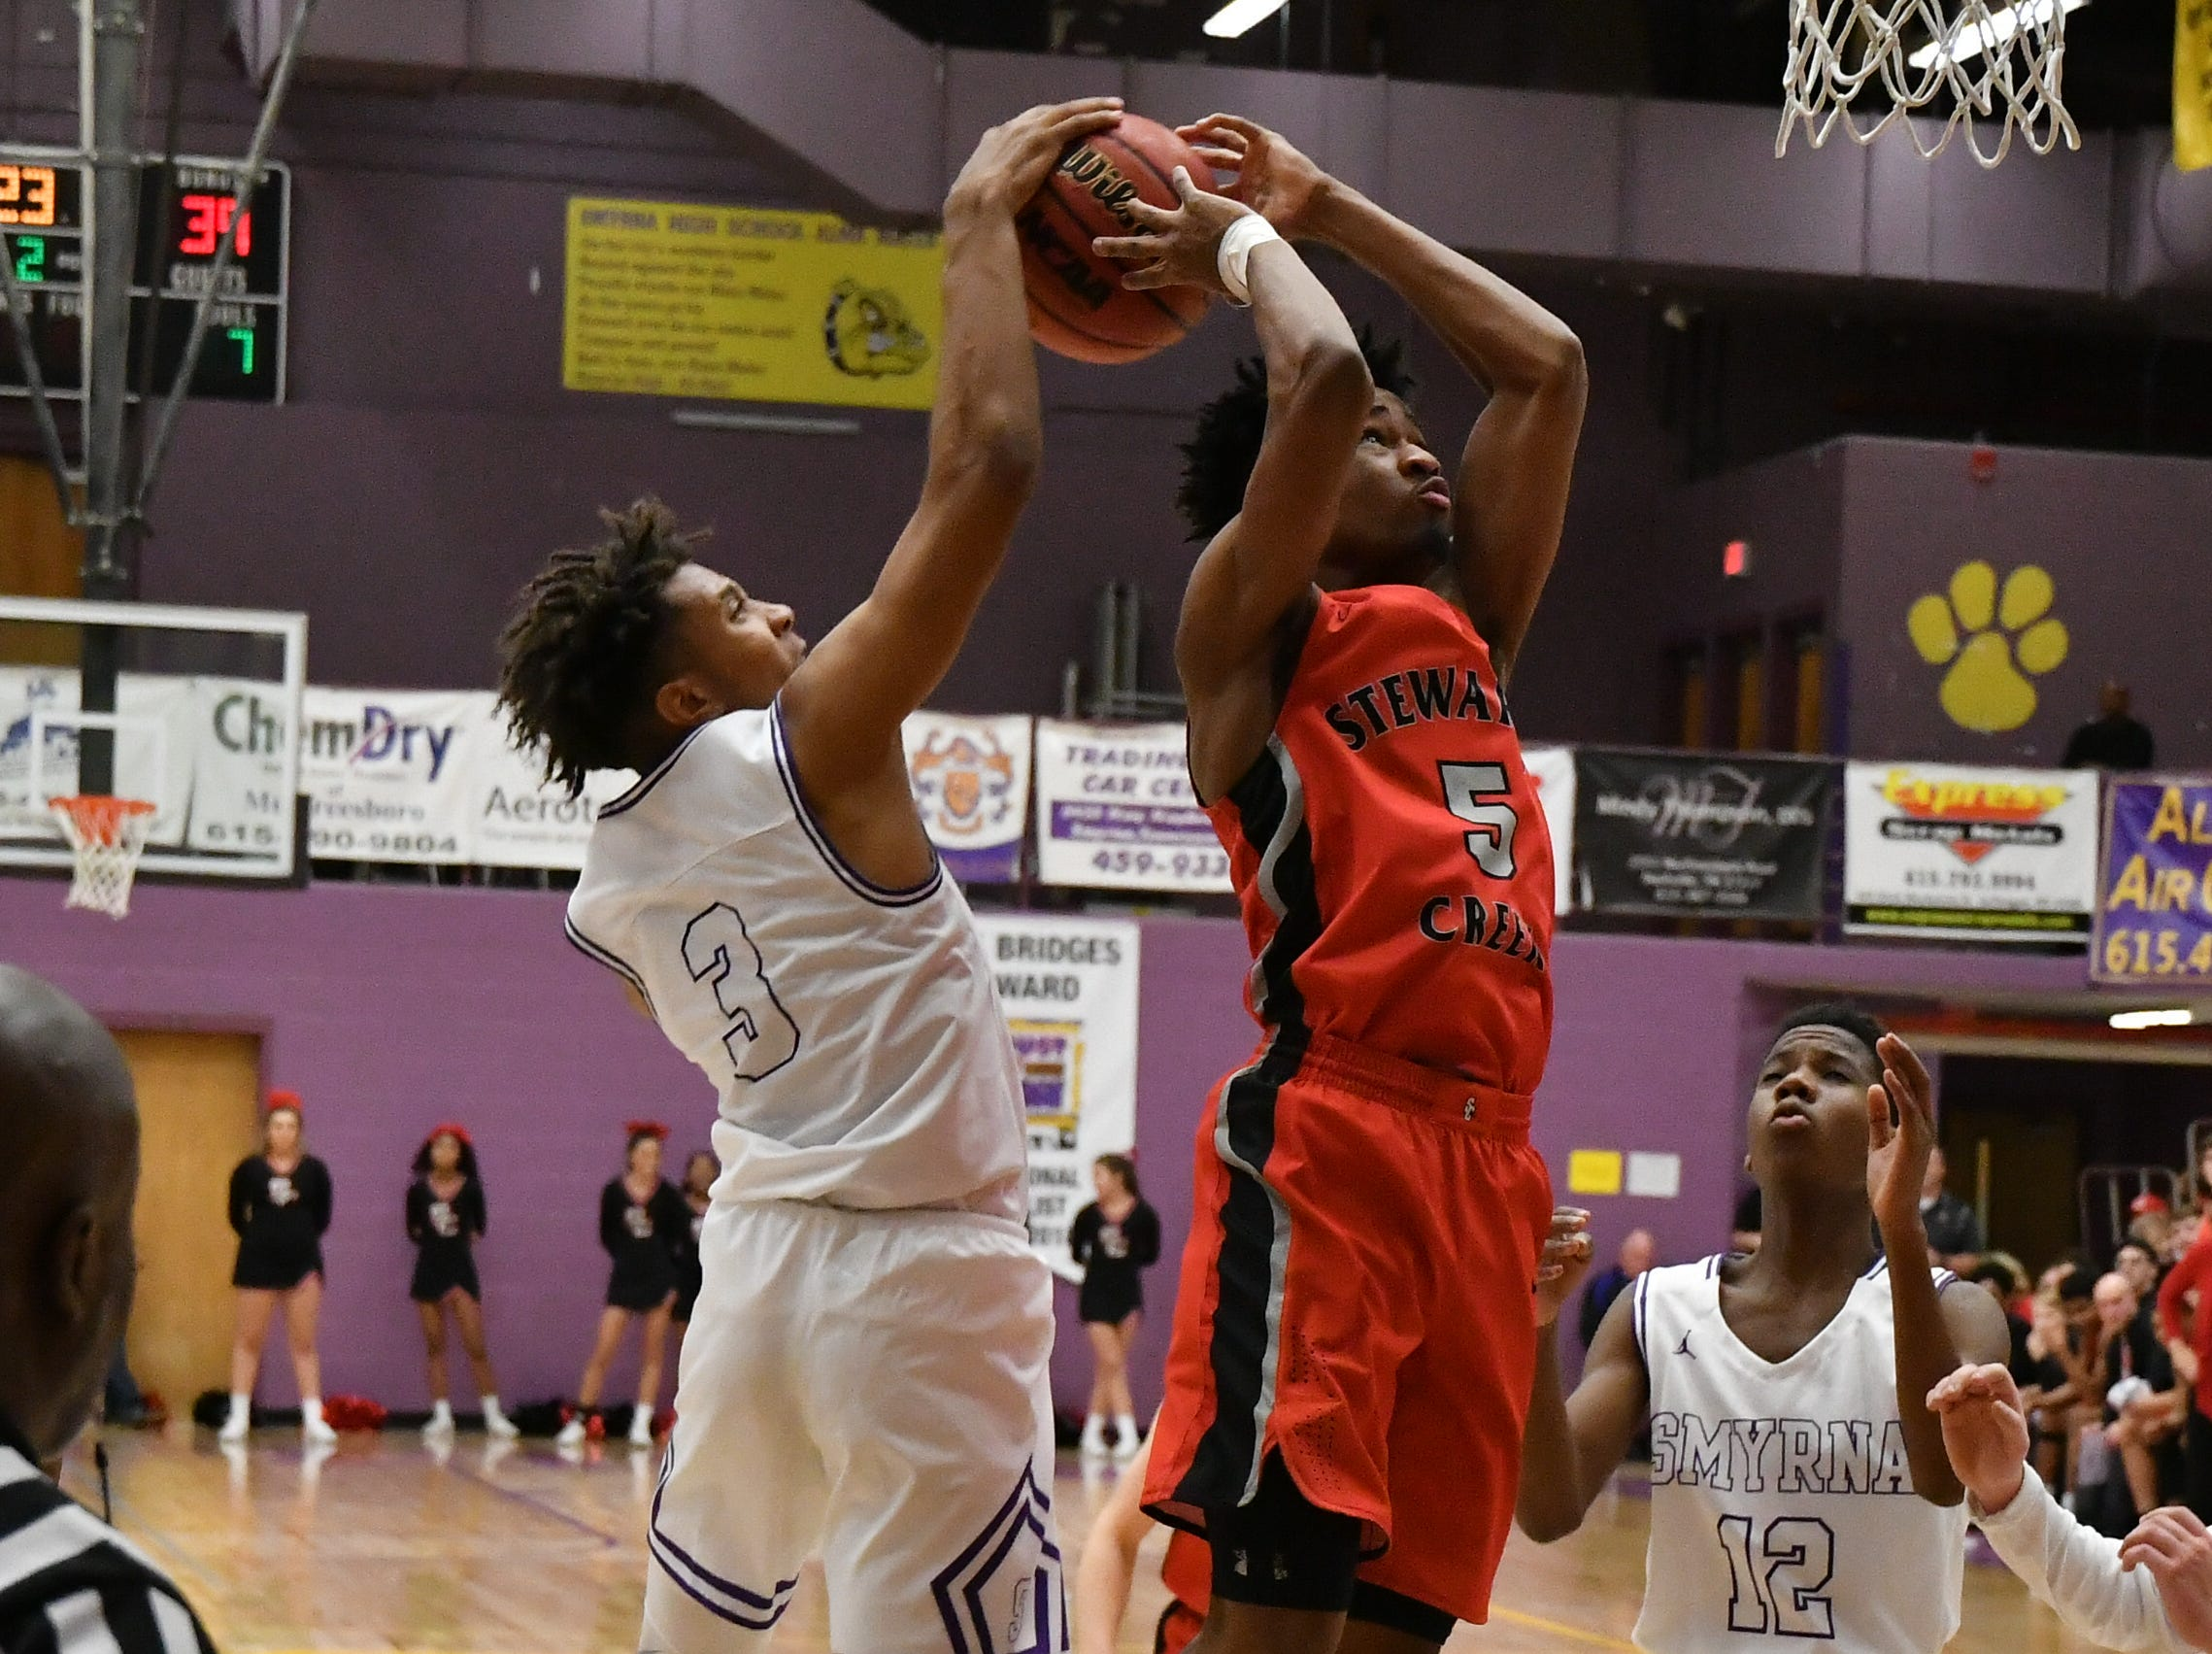 Smyrna's Thomas Riddle gets a hand on the shot attempt by Stewarts Creek's Memphis Horner.